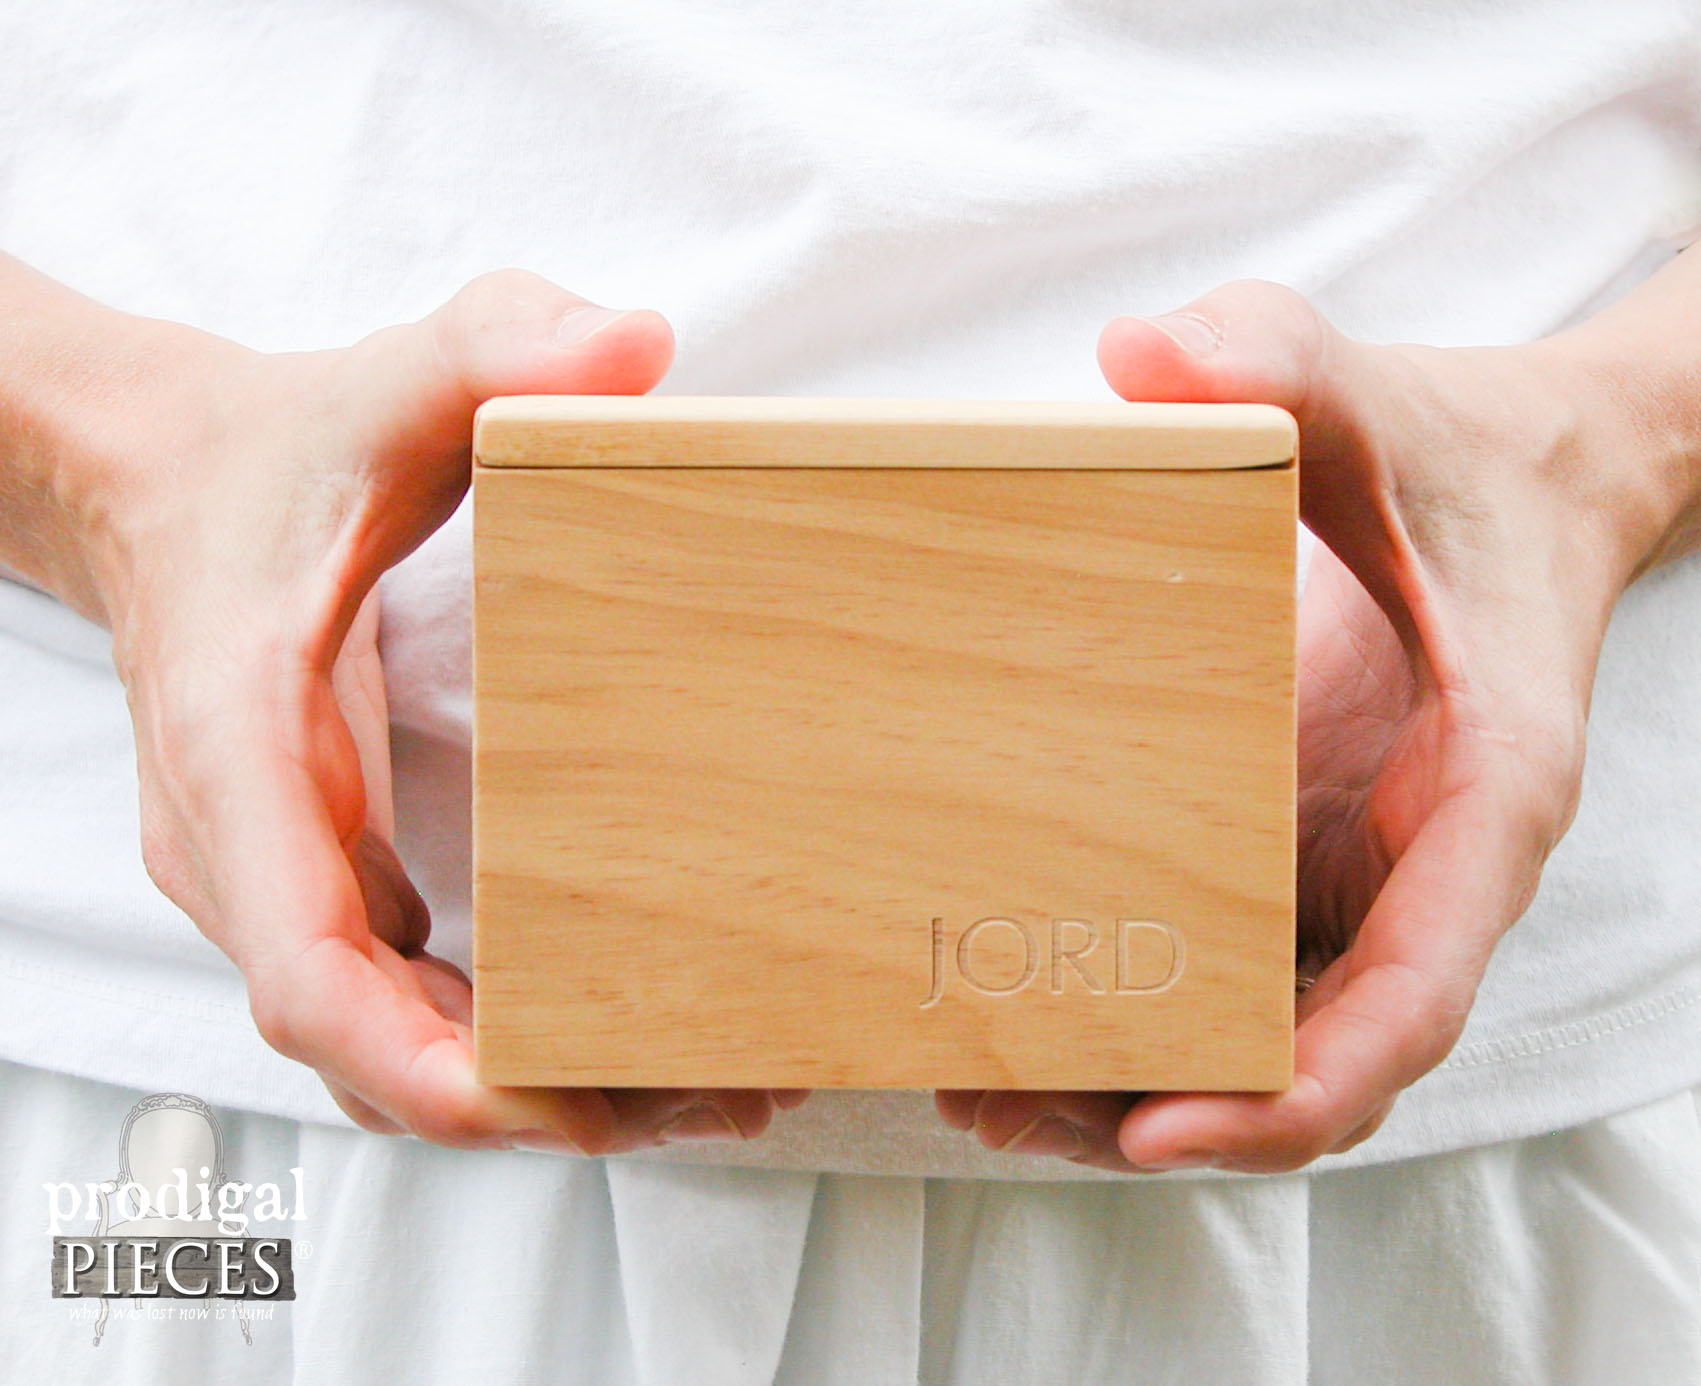 Wooden JORD Women's Watch Review by Prodigal Pieces | www.prodigalpieces.com